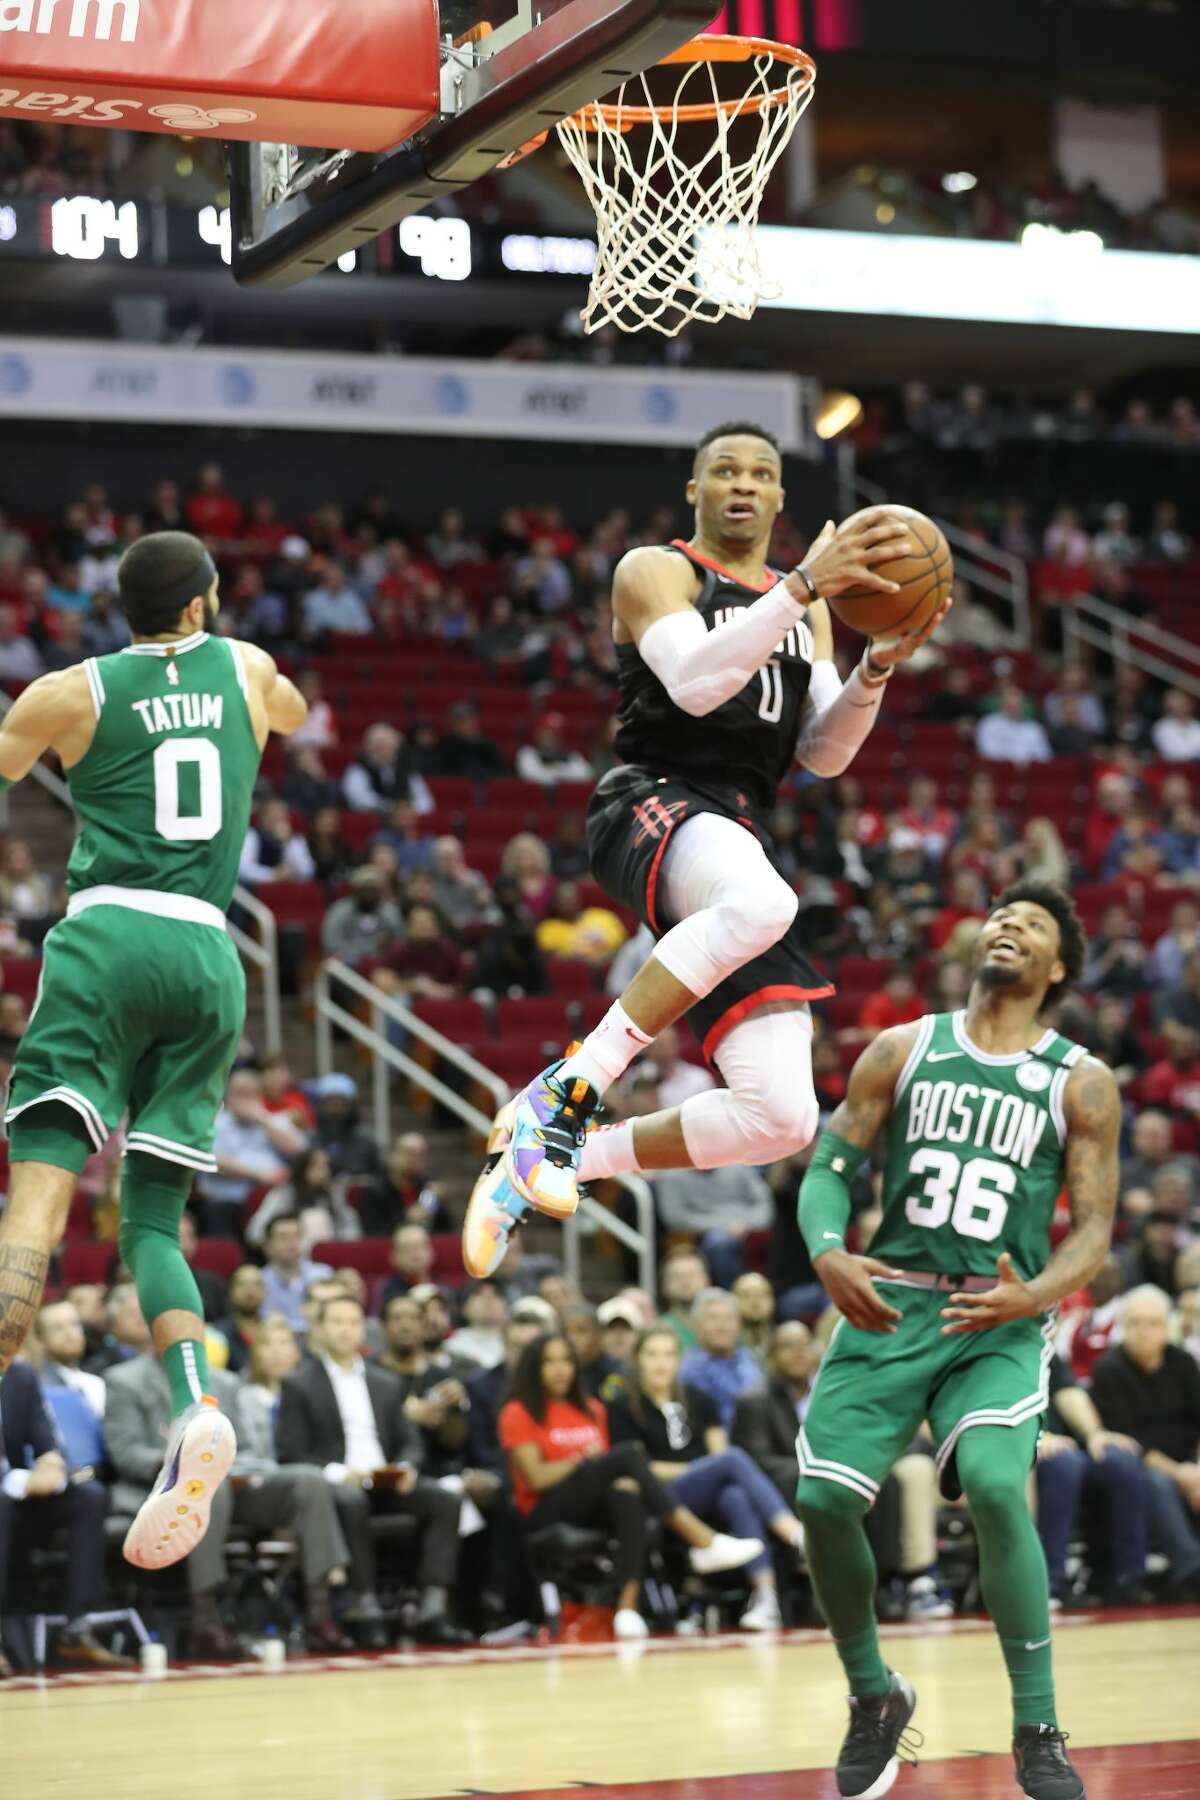 Houston Rockets guard Russell Westbrook (0) goes up for a easy layup during the second half of an NBA basketball game at Toyota Center on Tuesday, Feb. 11, 2020, in Houston.